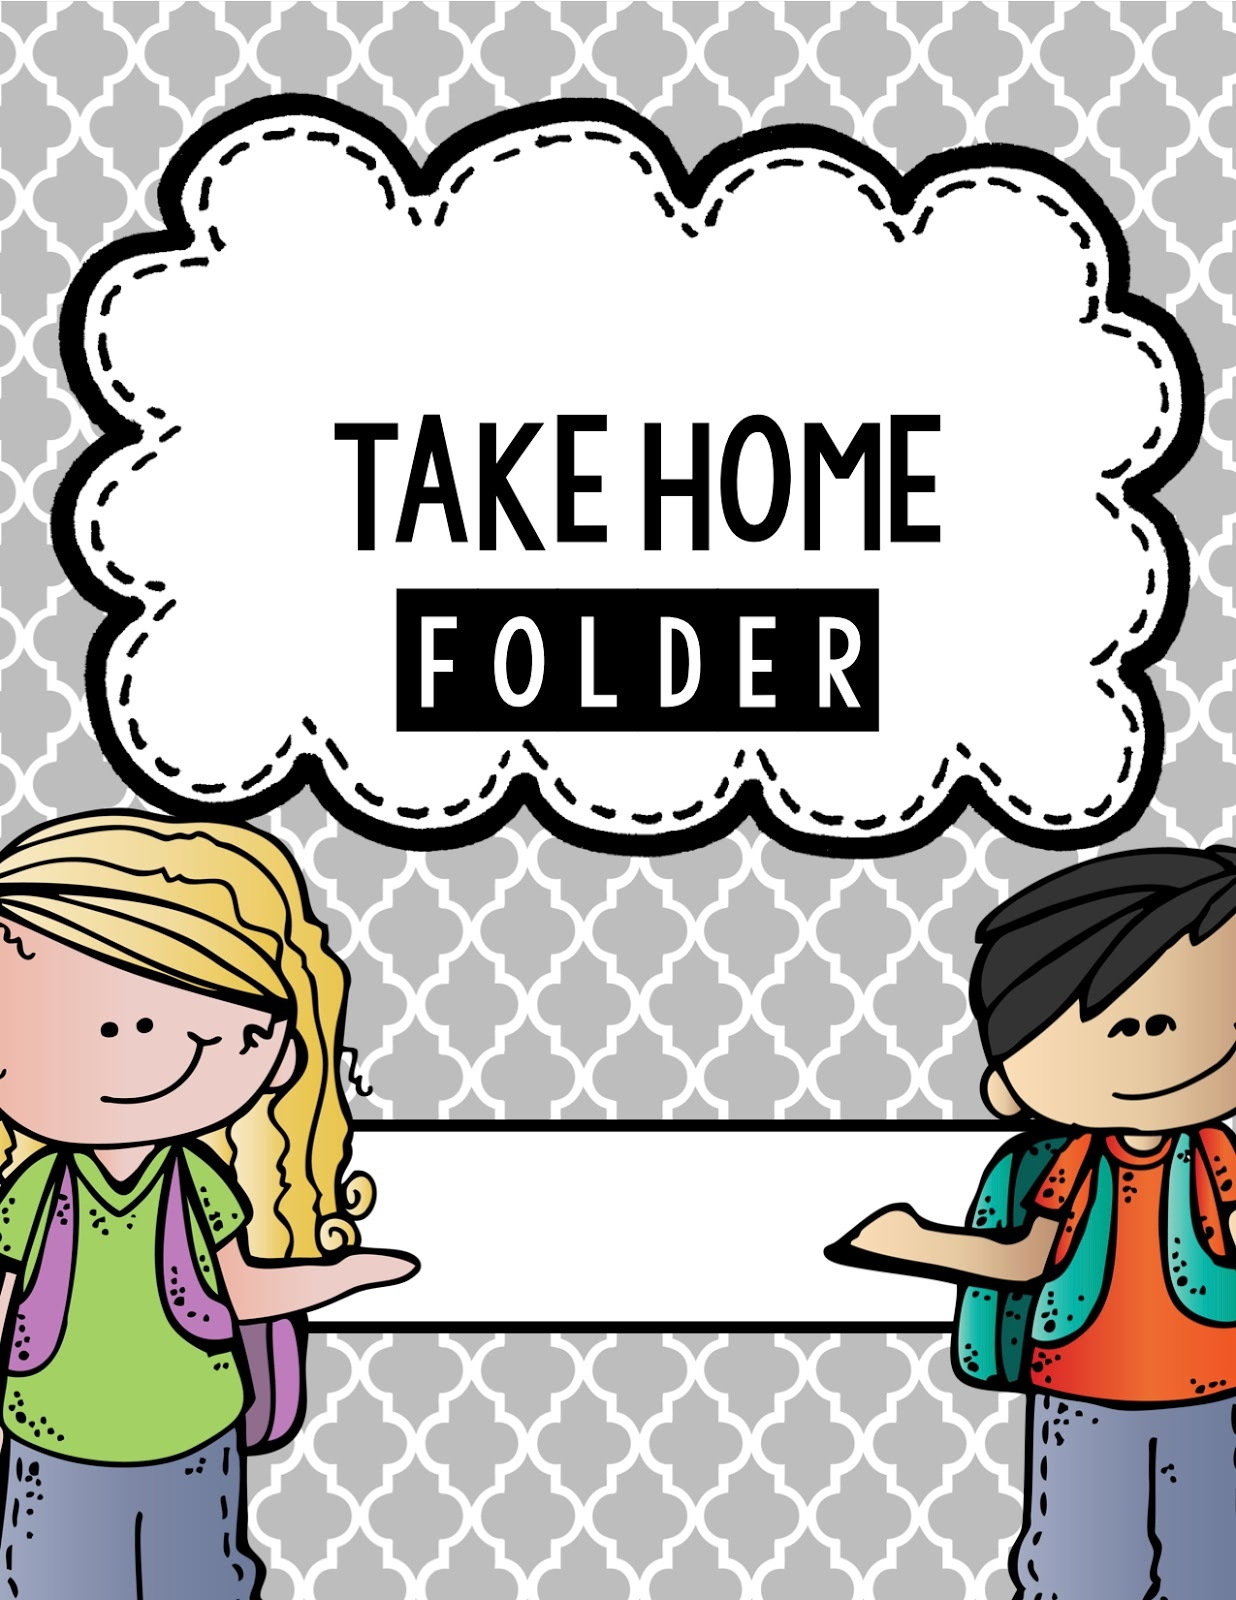 Projects And Polkadots In First: Managing Papers.from School To Home! - Free Printable Take Home Folder Labels